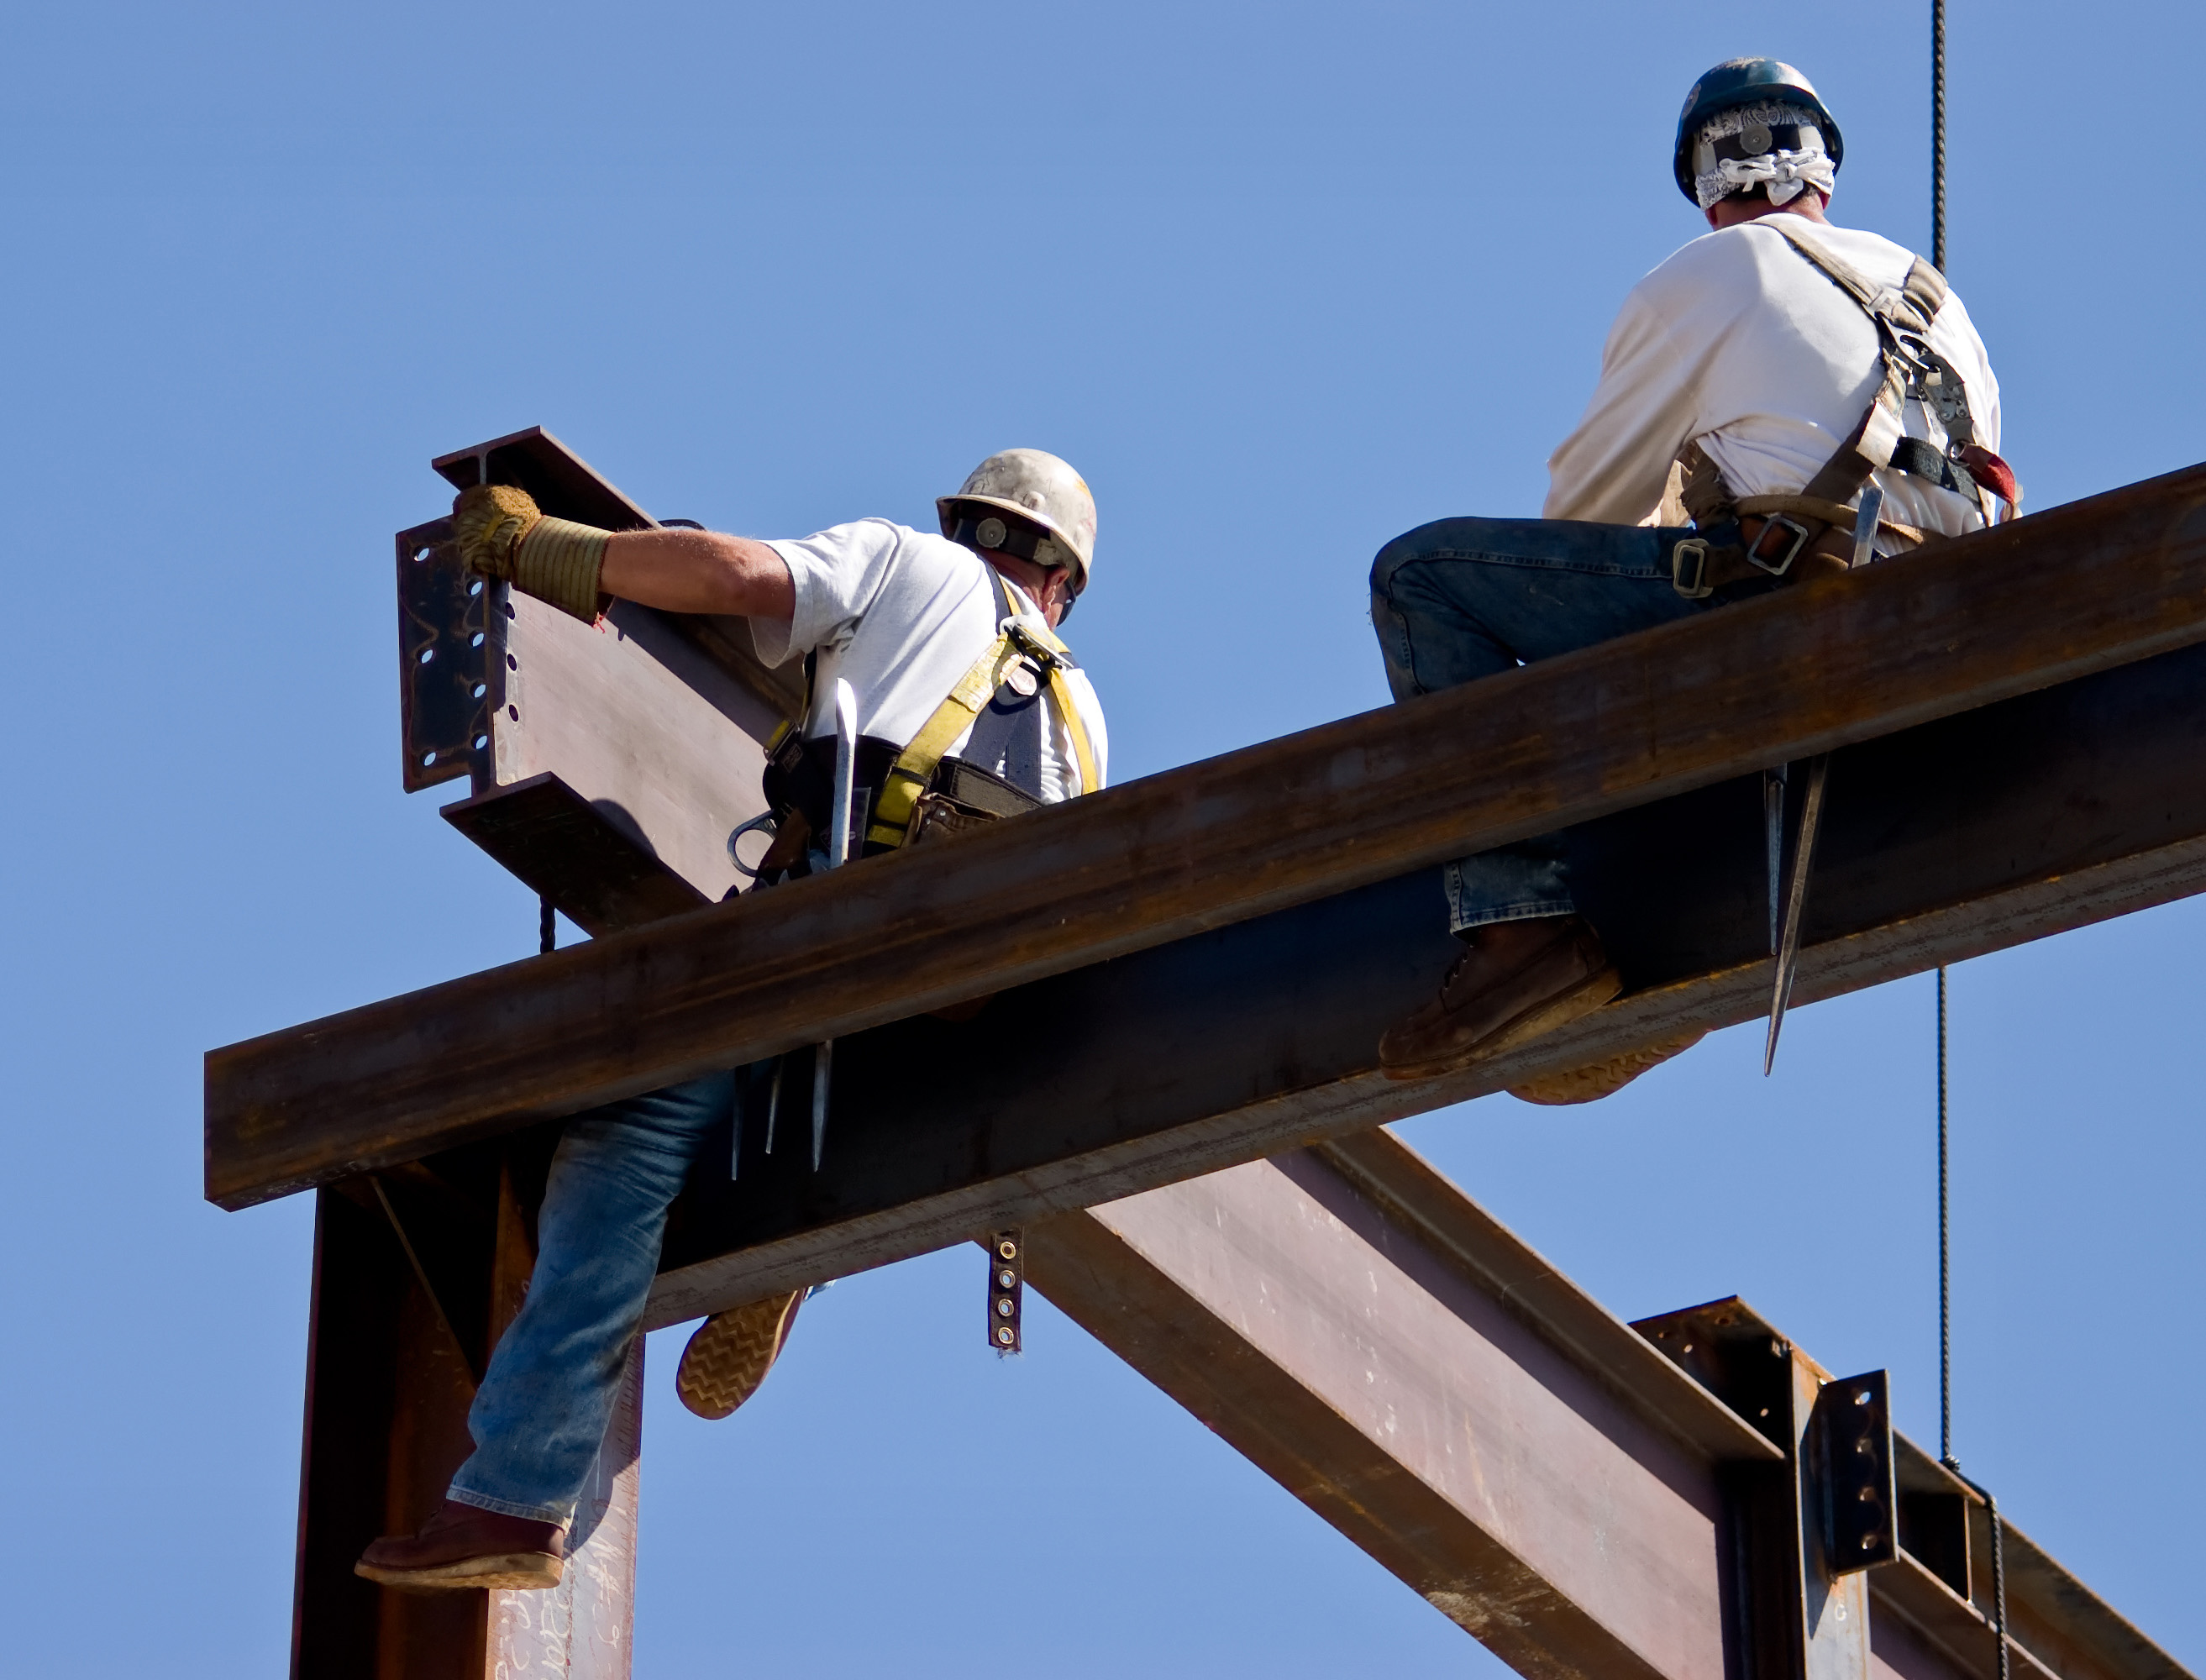 Two ironworkers atop the skeleton of a modern building. One man is positioning a very large beam while the other man watches.